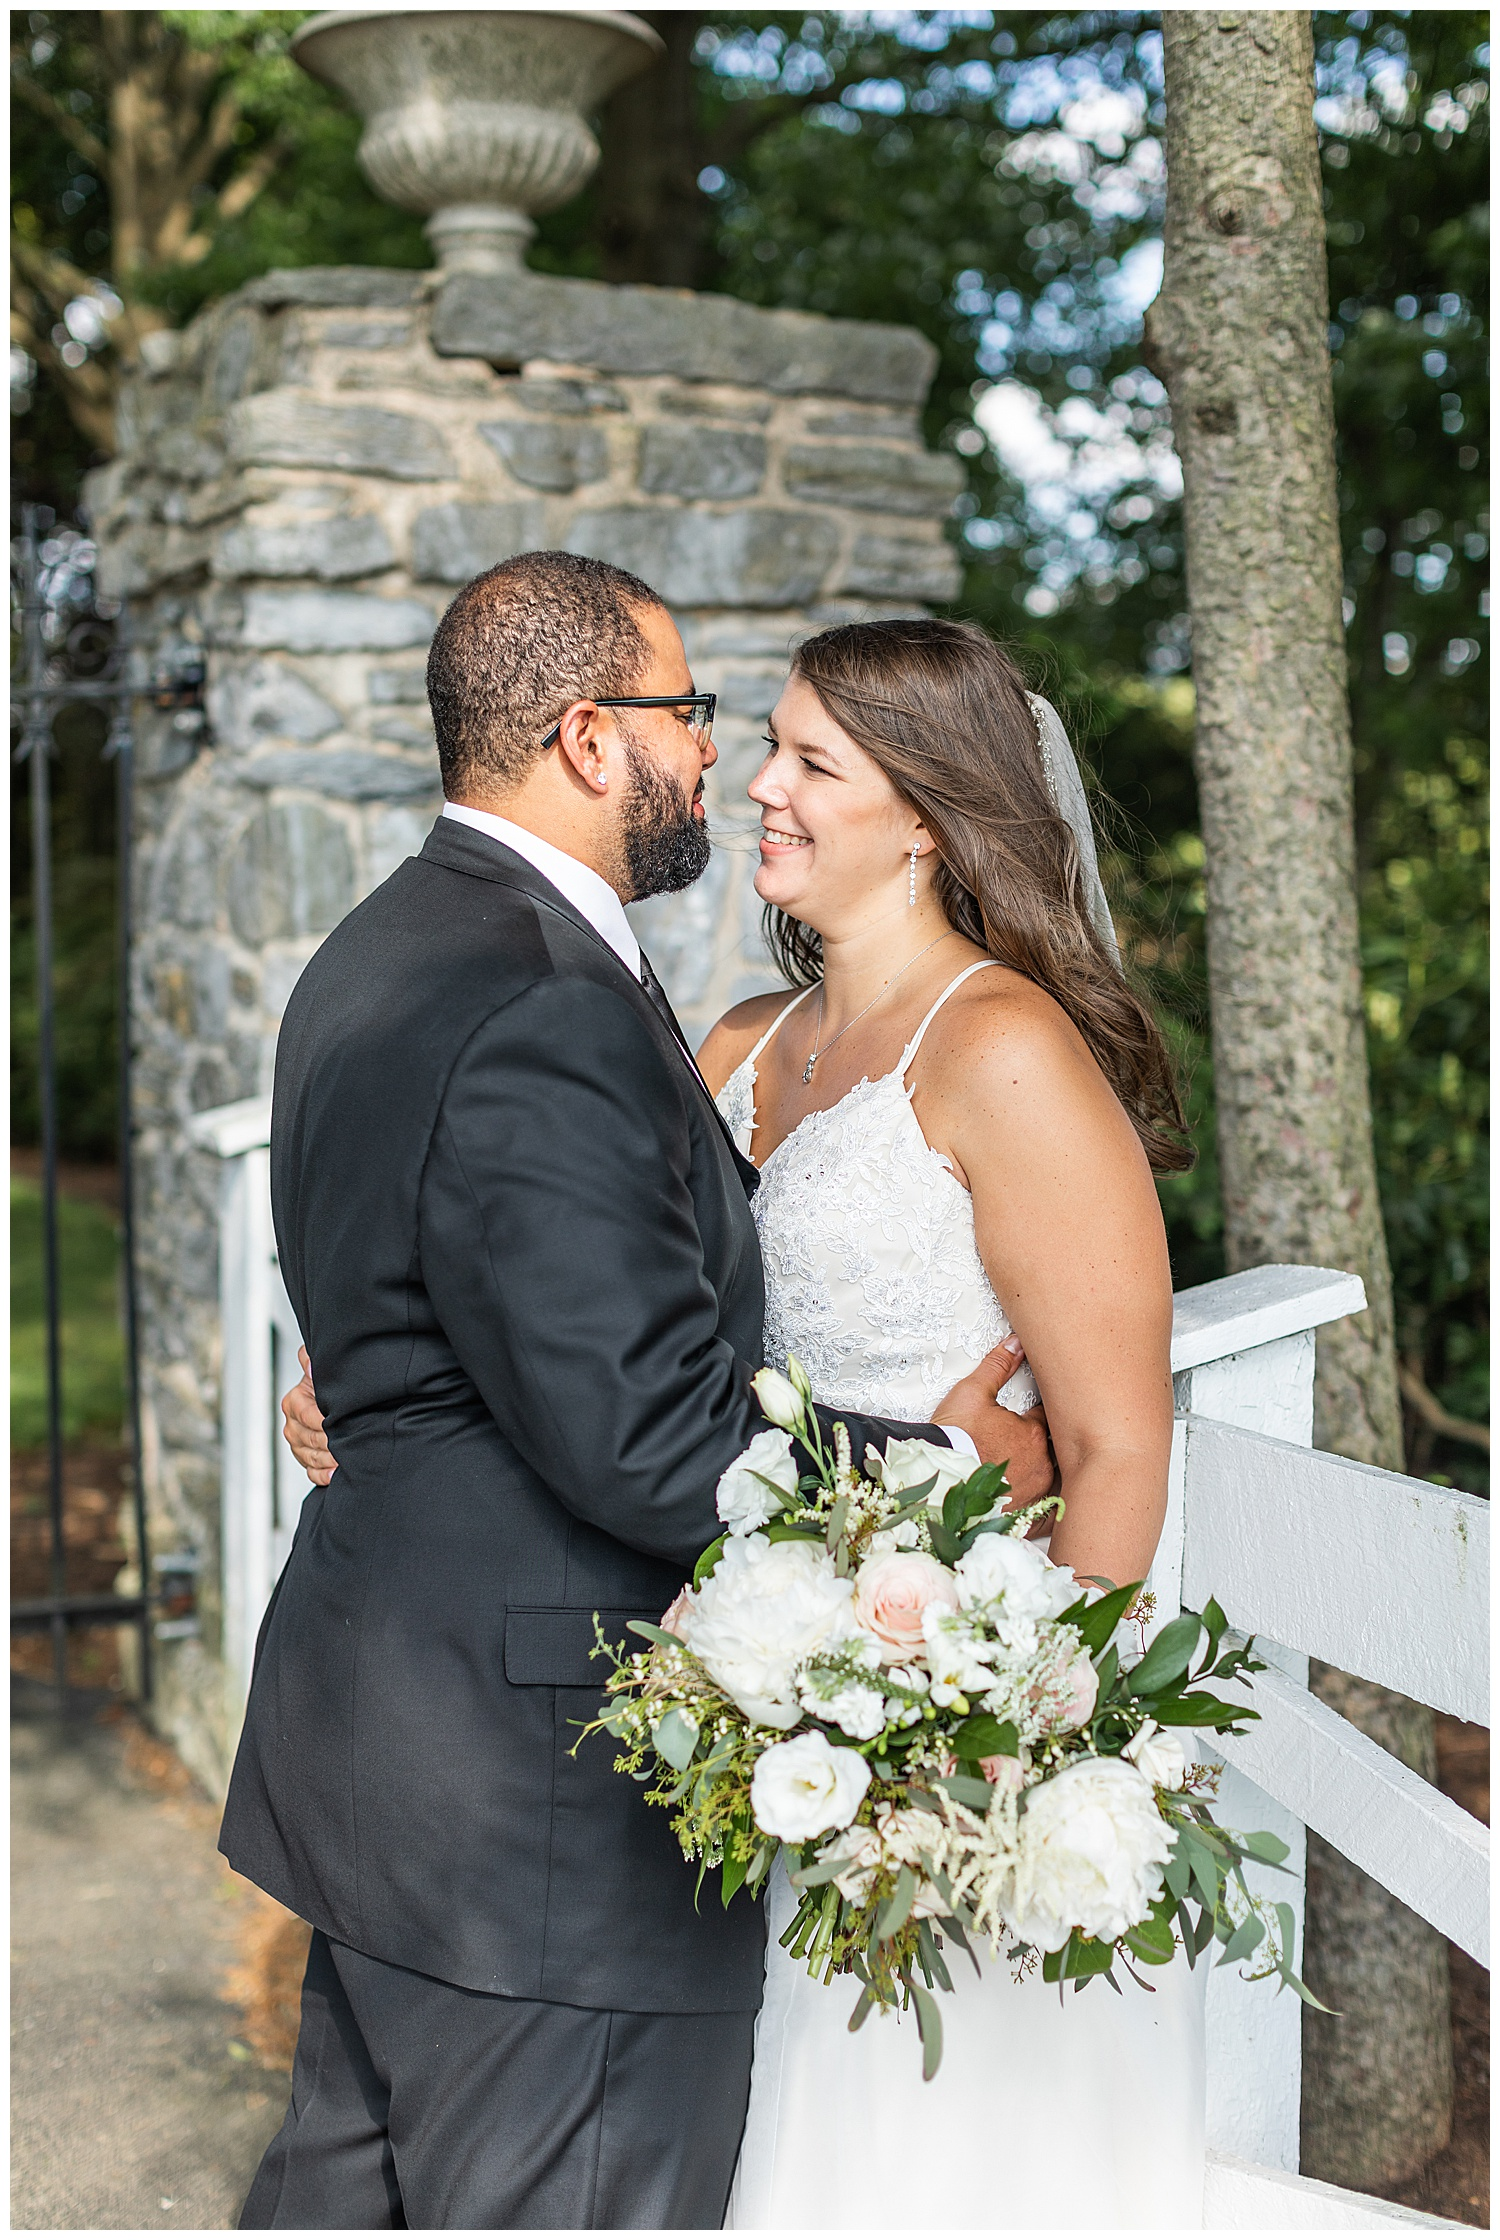 Brittany + Darryl Linwood Estate Wedding Living Radiant Photography photos_0104.jpg